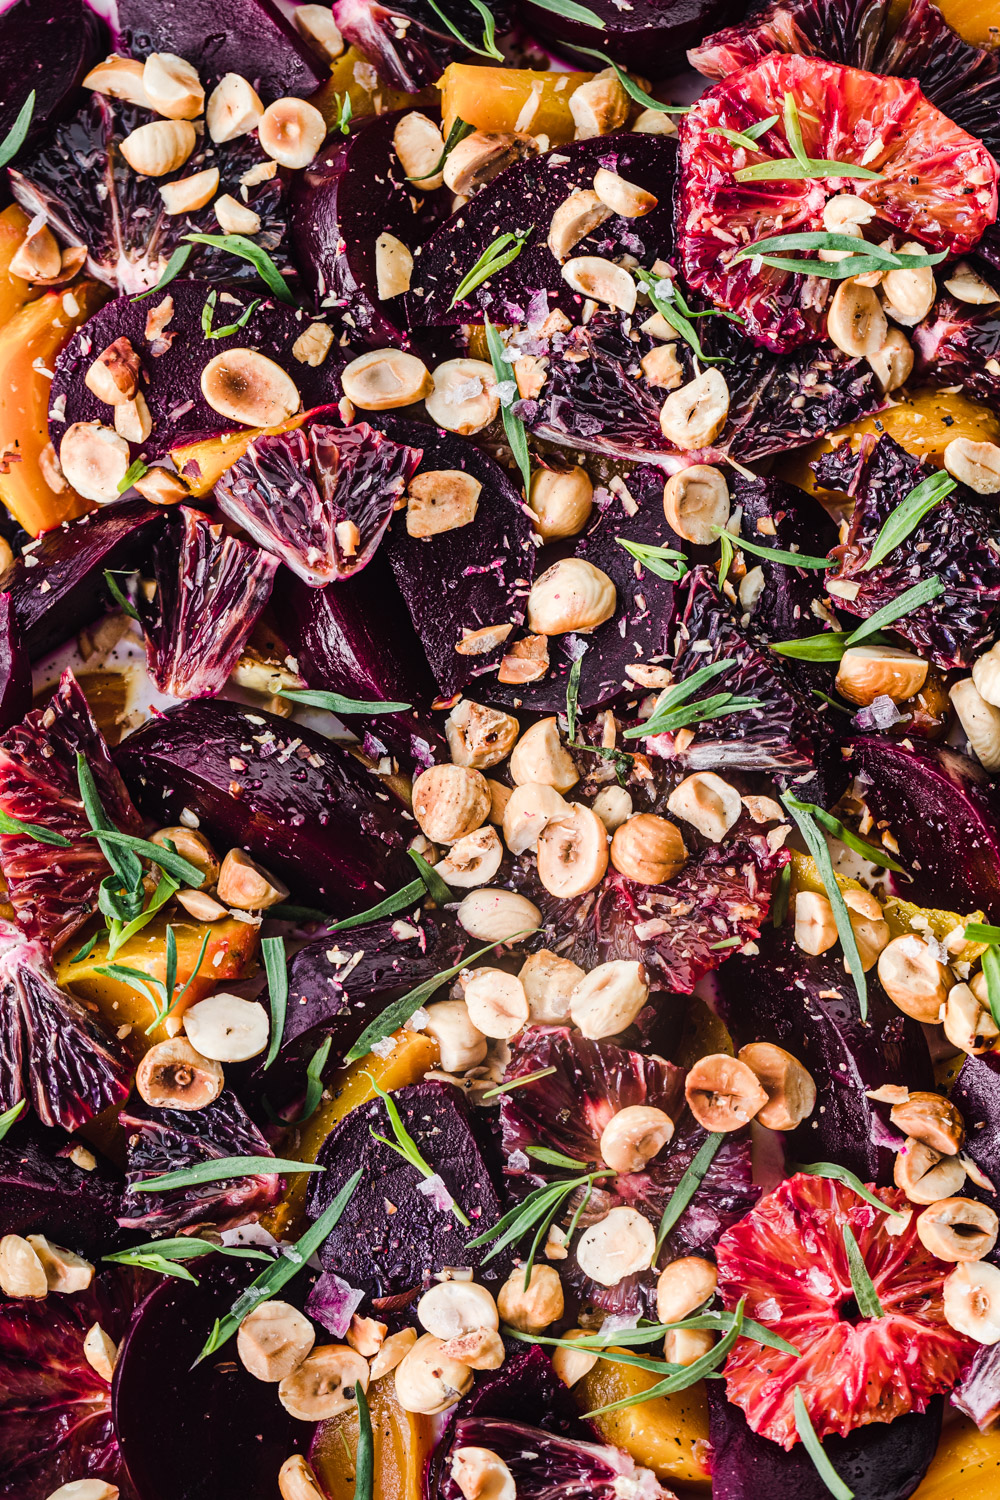 Finished beet salad dish, overhead and up close shot.